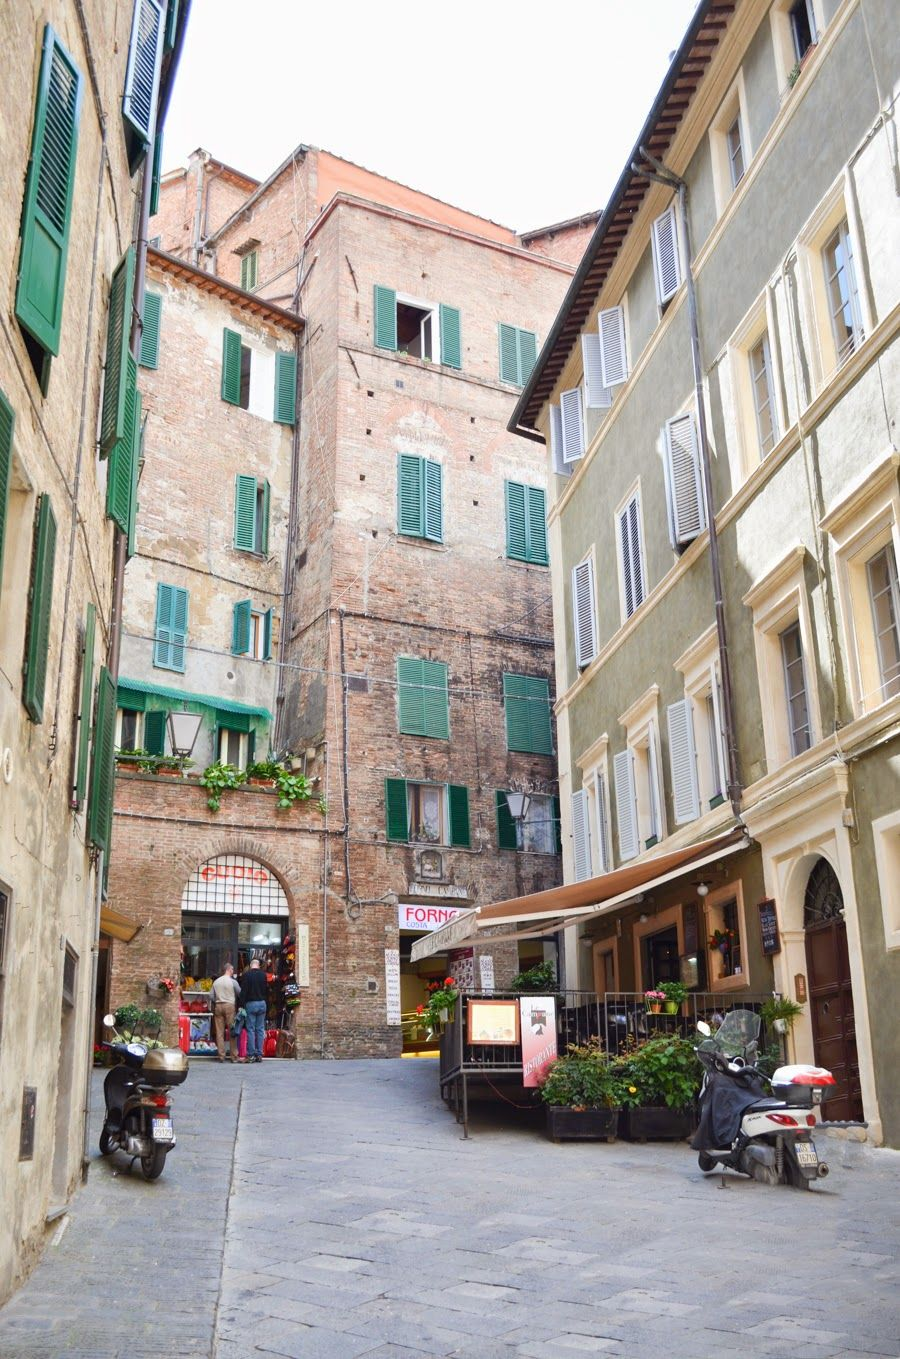 Serene in Siena, Italy - cute alleyway photos | Luci's Morsels